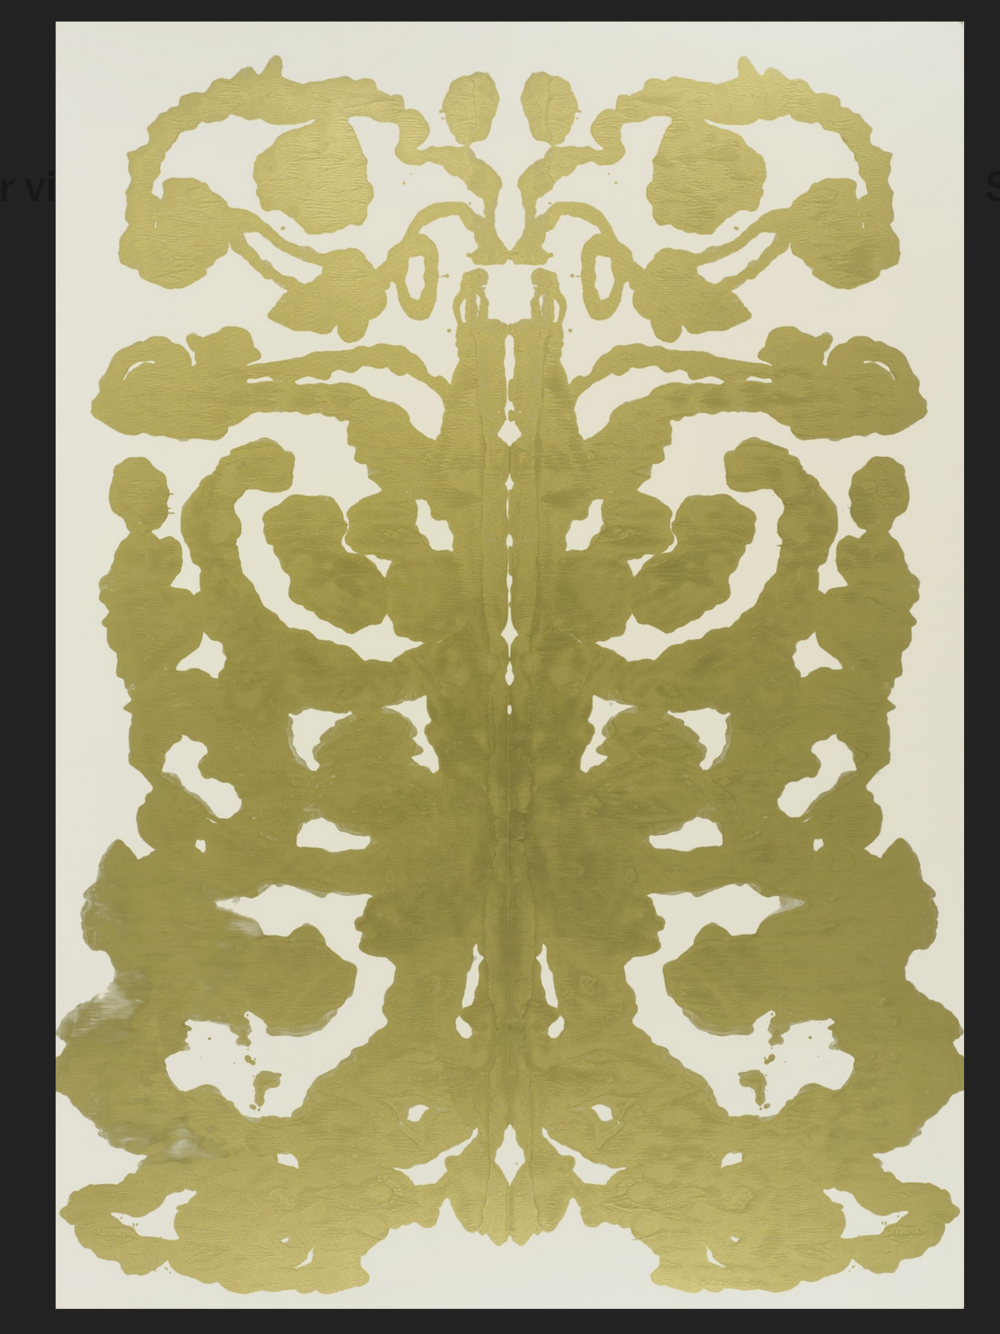 Rorschach  by Andy Warhol, 1984.